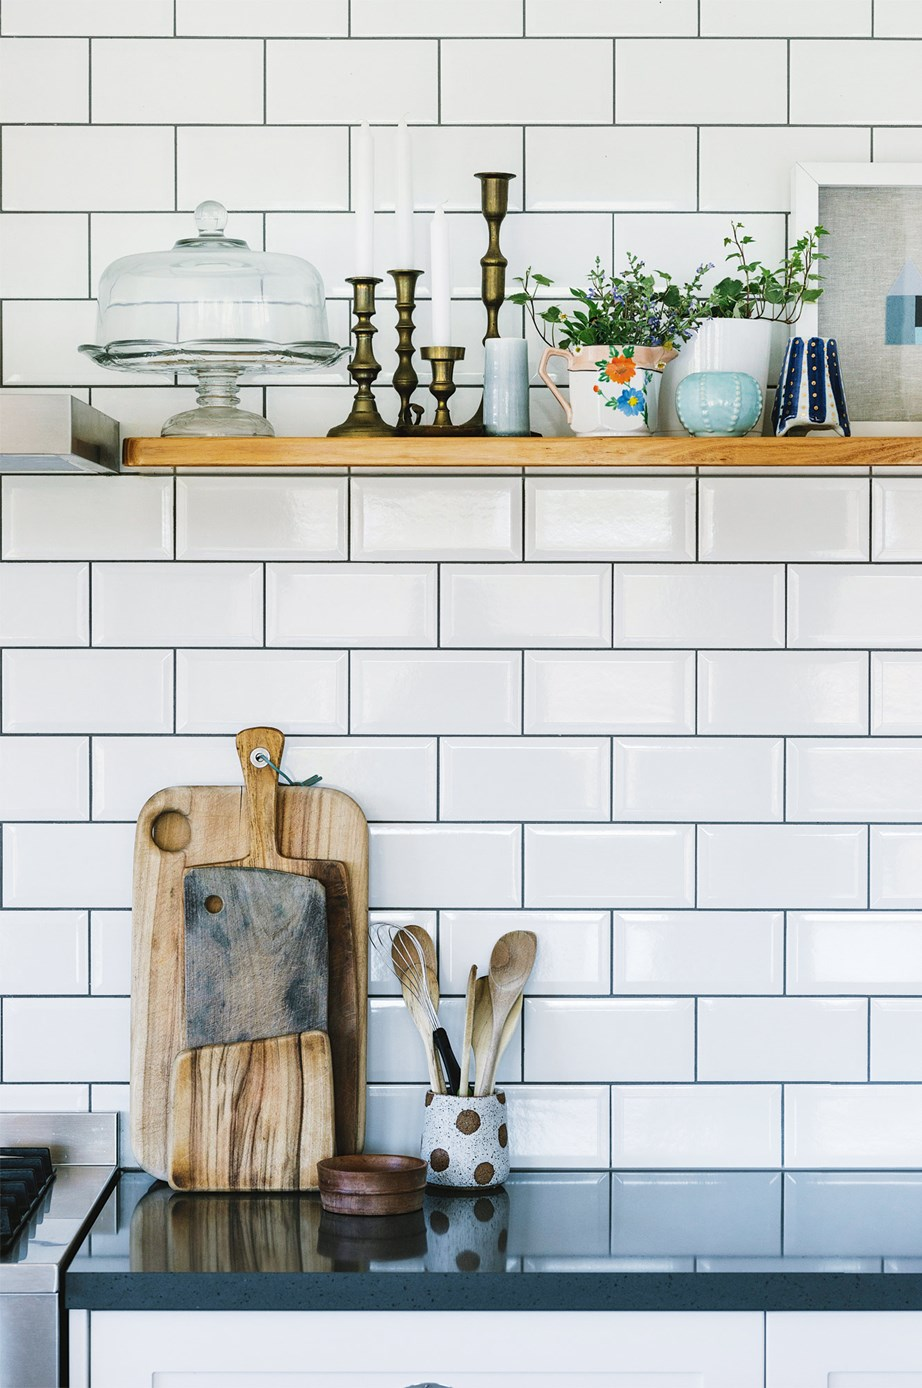 If you choose to replace your tiles, white subway tiles are a budget-friendly option that suit any style of kitchen.